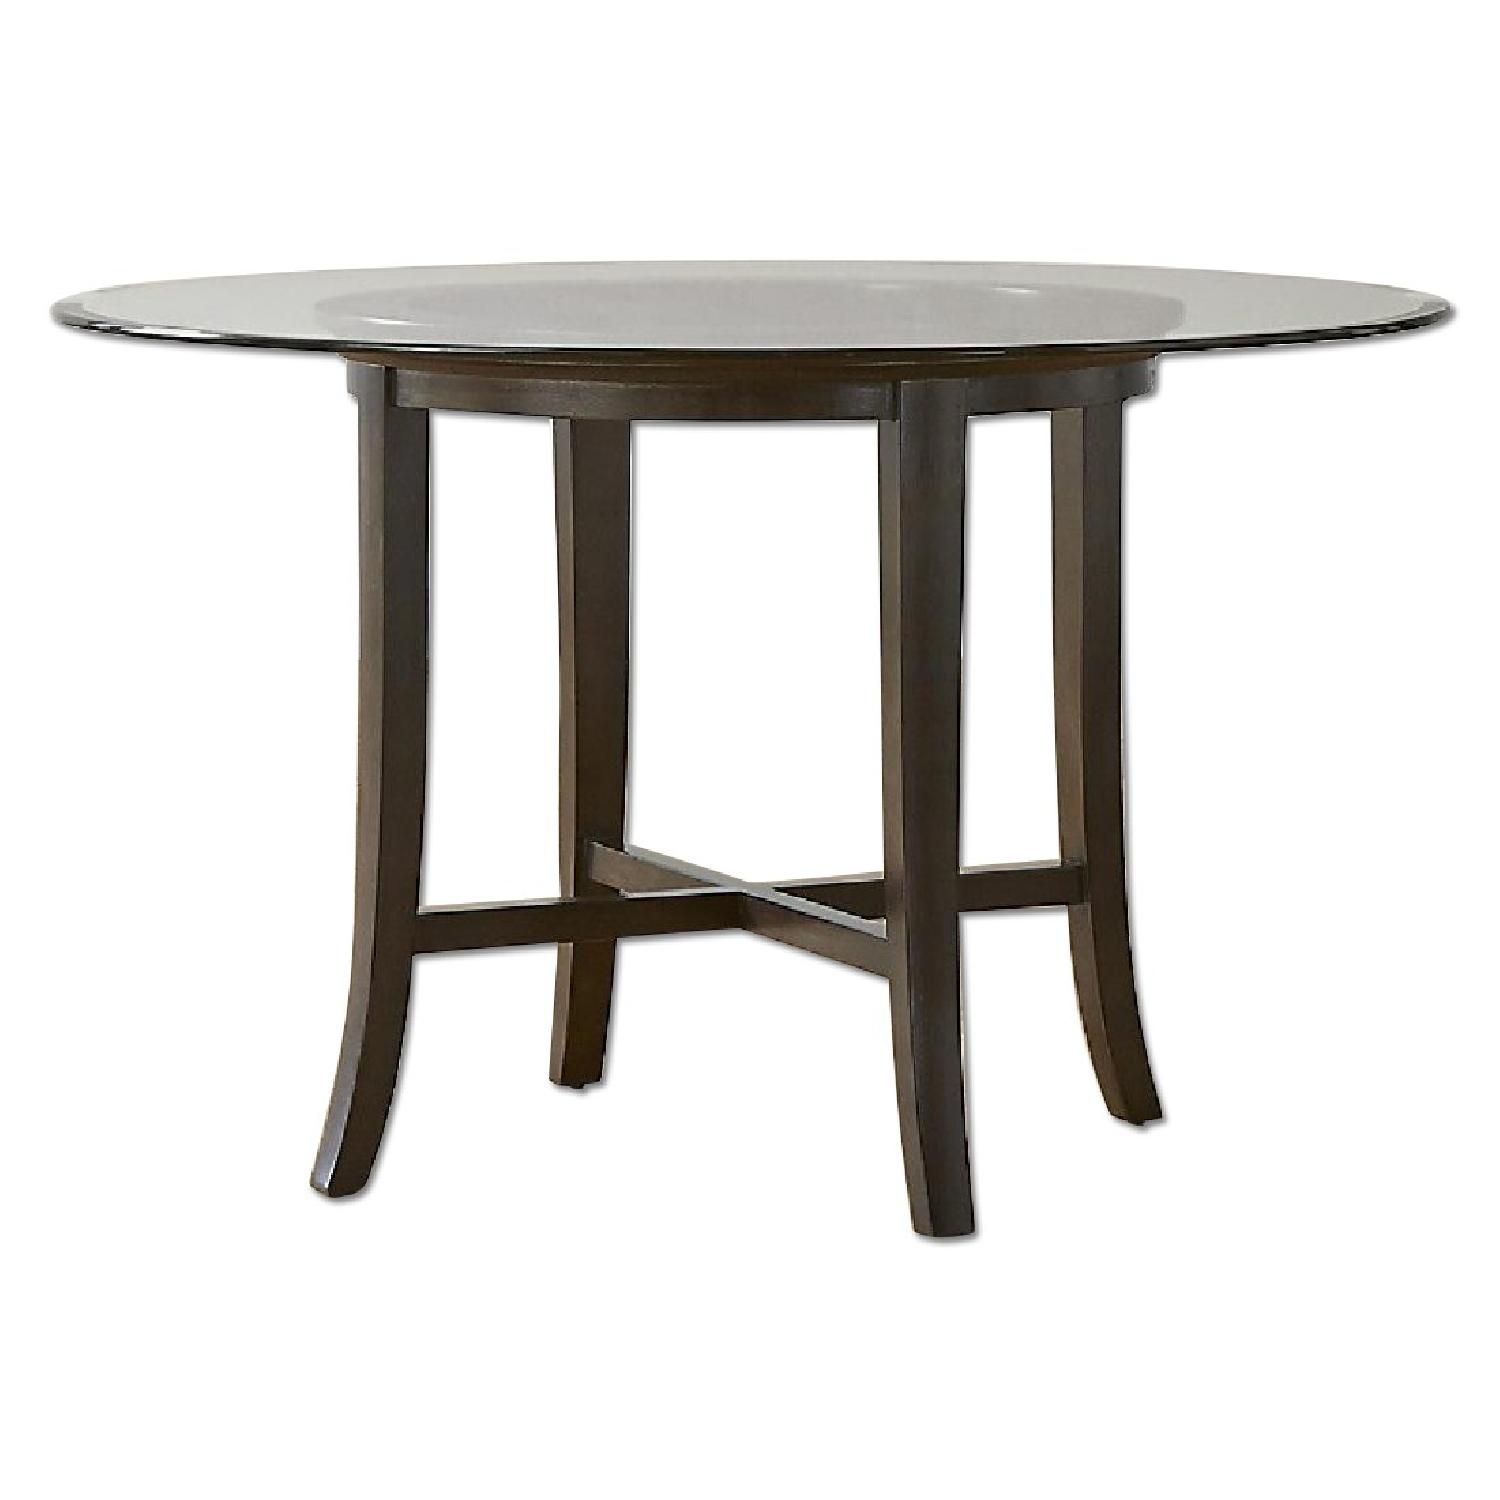 Crate & Barrel Glass Halo Dining Table - image-0